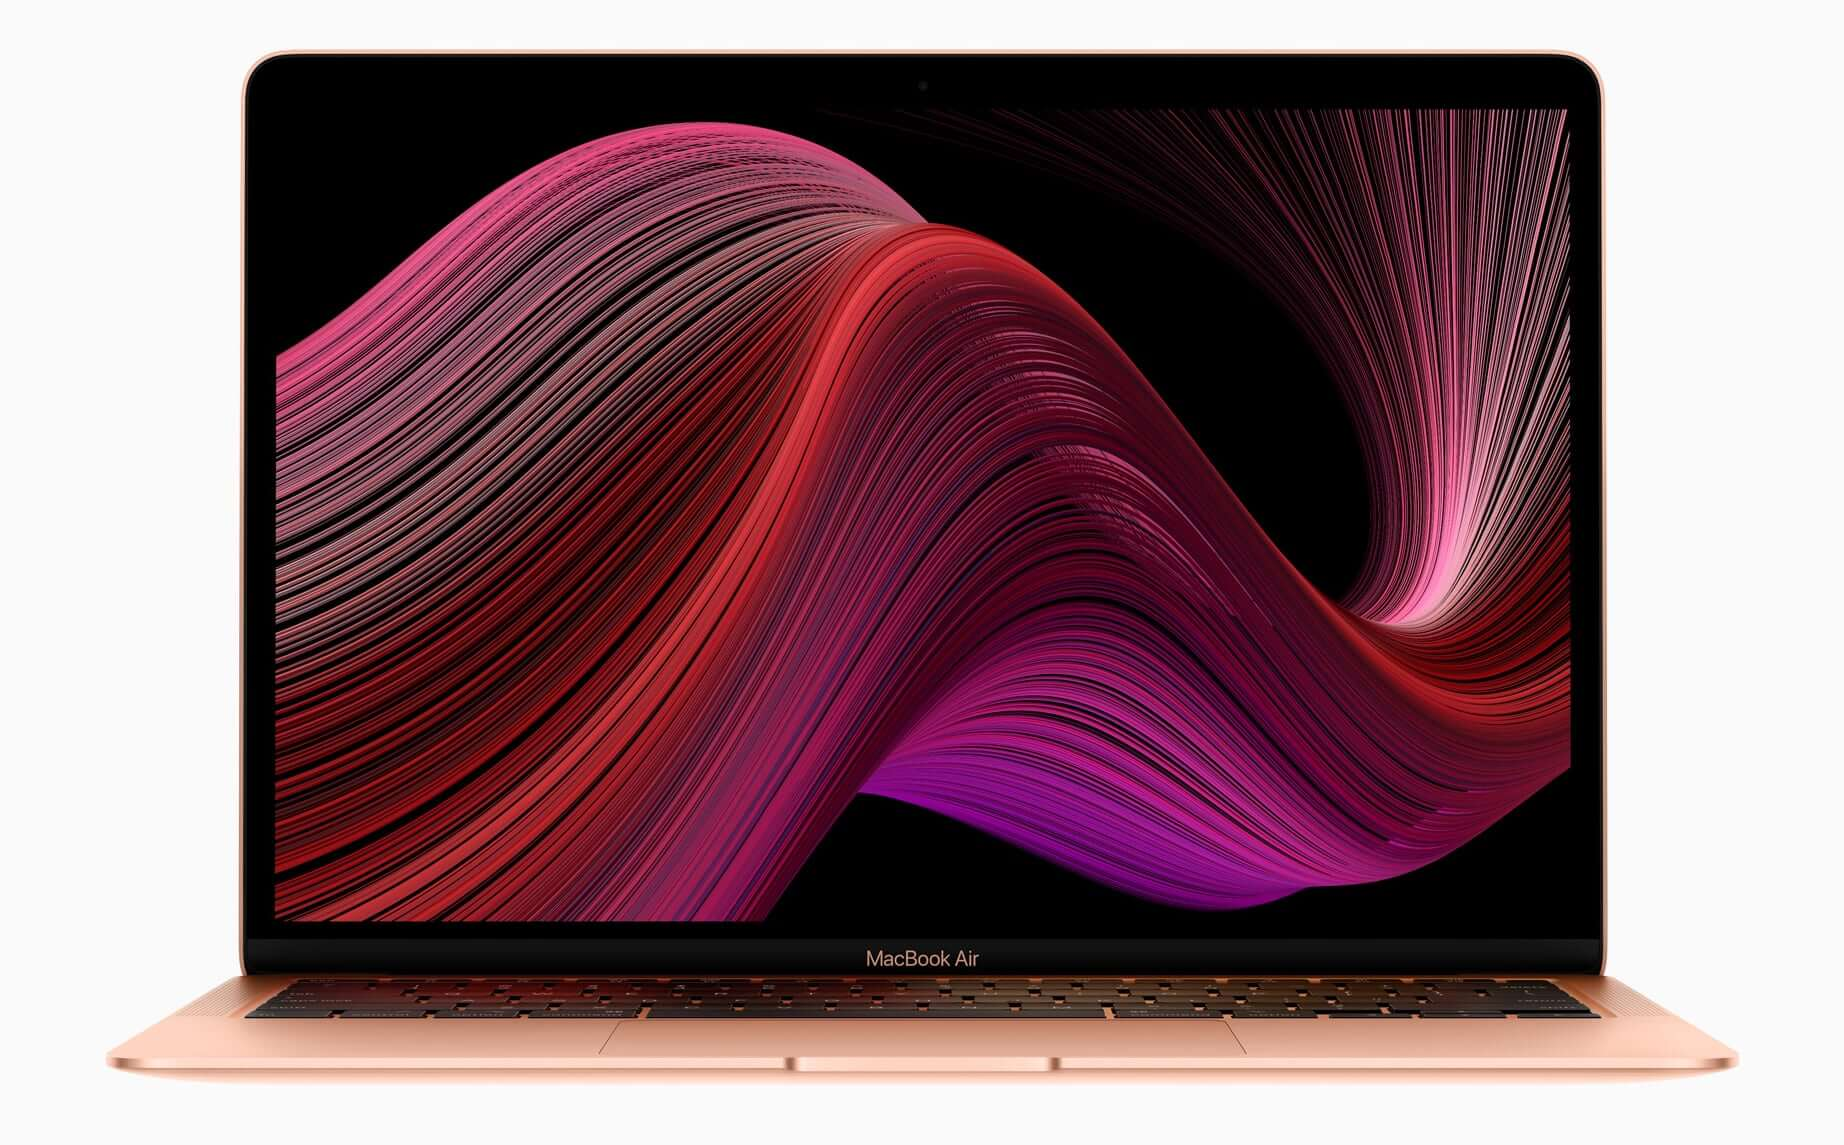 Apple updates MacBook Air with improved internals for $999, new iPad Pro with Magic Keyboard